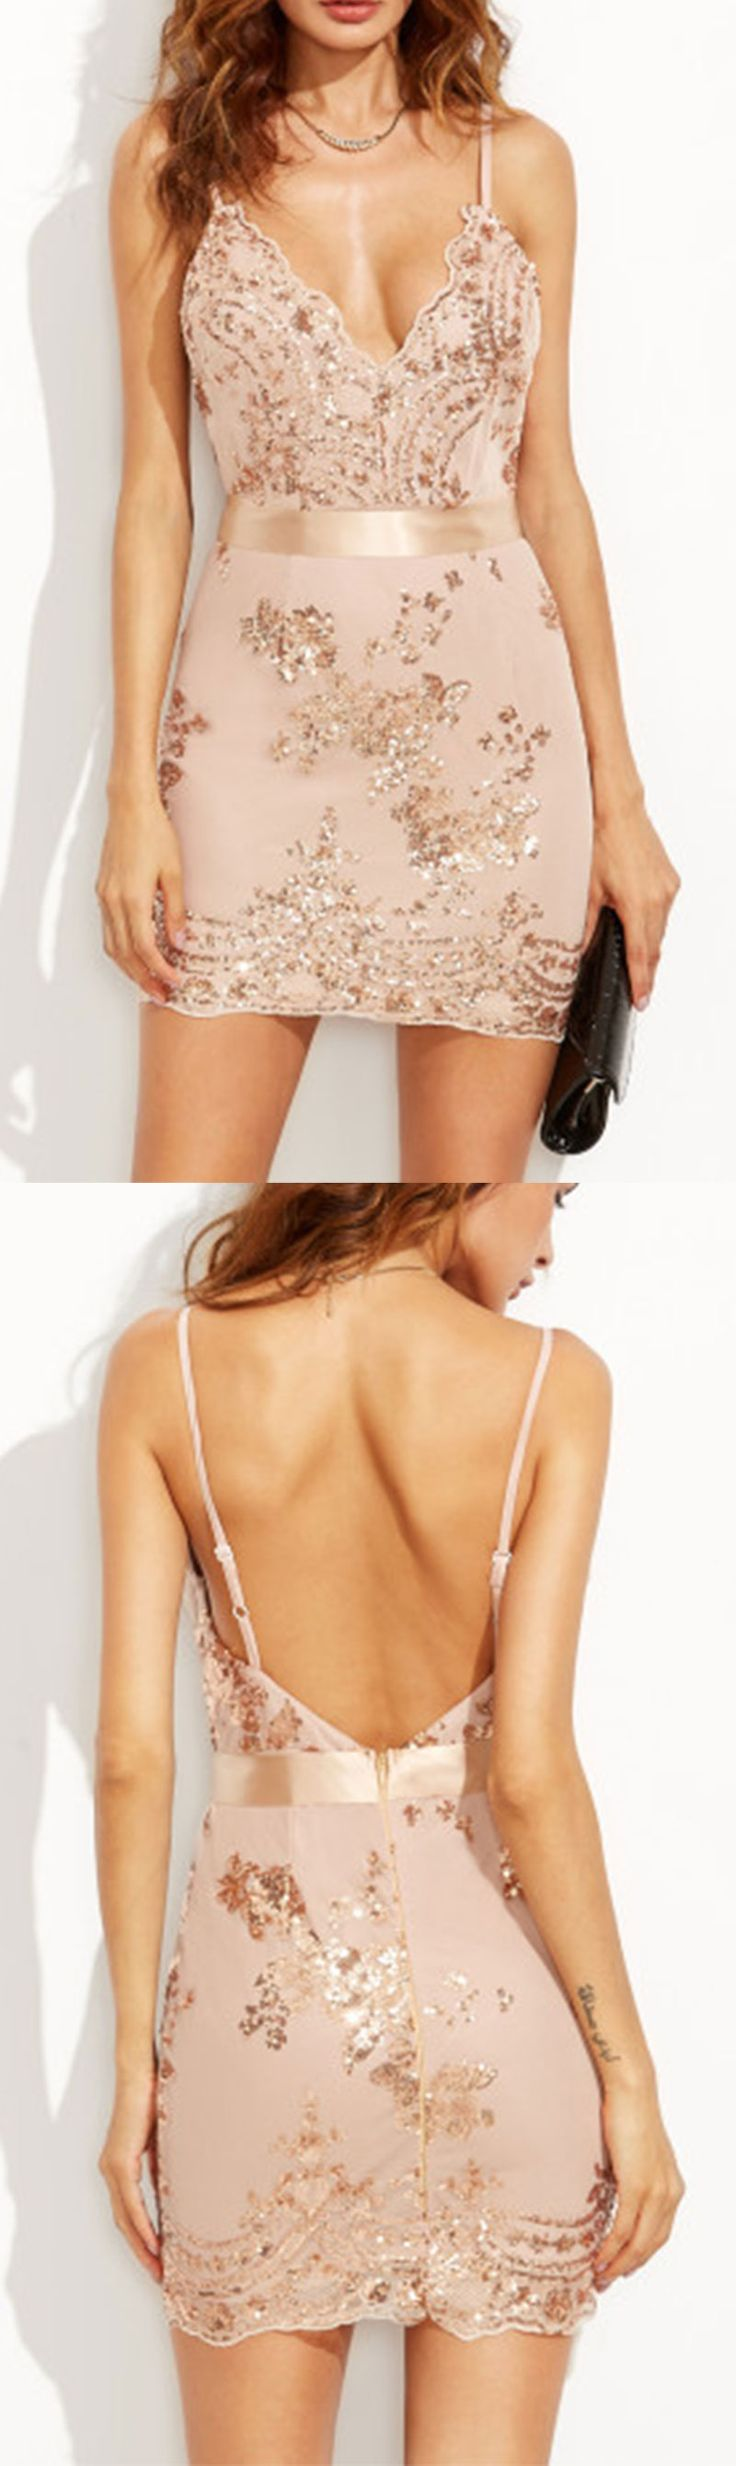 Sequins dress from shein.com. Gold bodycon dress with spaghetti strap neckline…